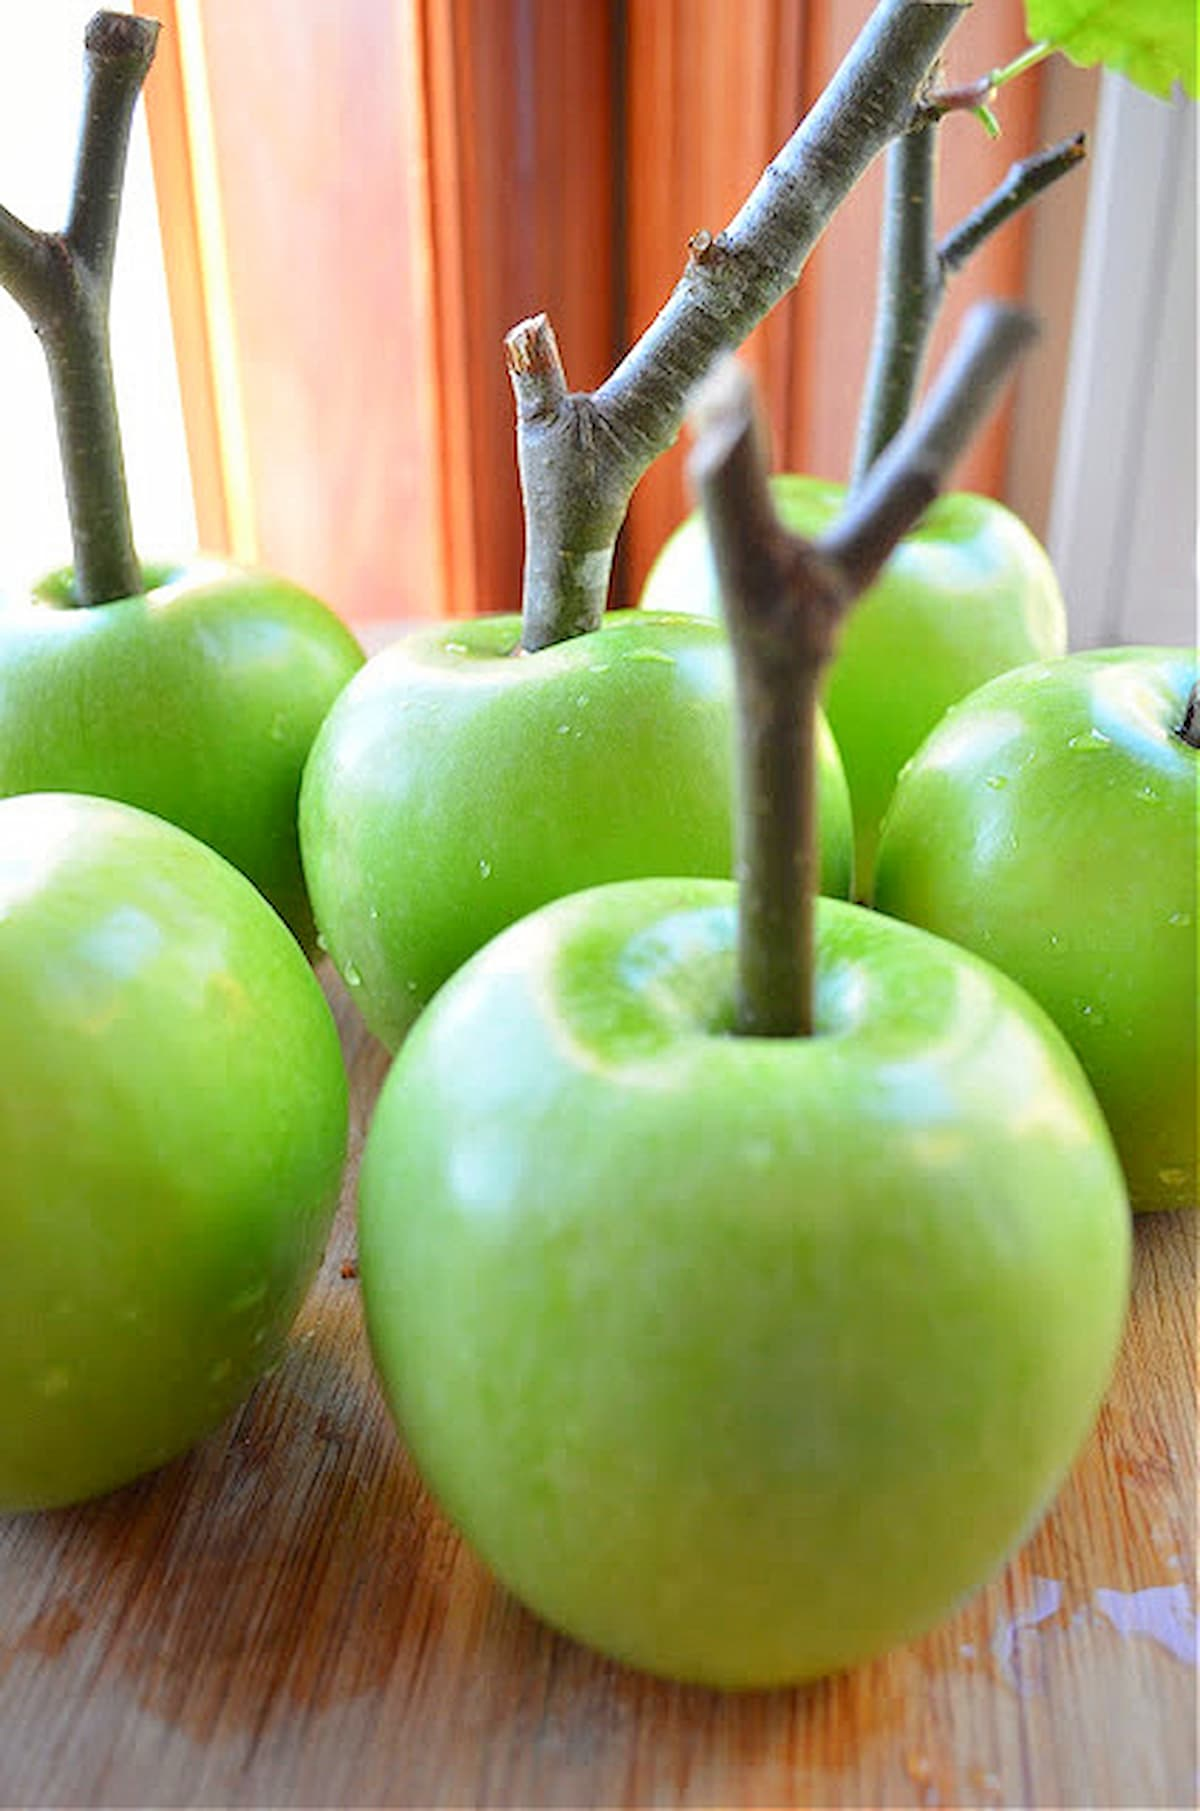 Apples with a Apple Twig in the center on a wooden cutting board.